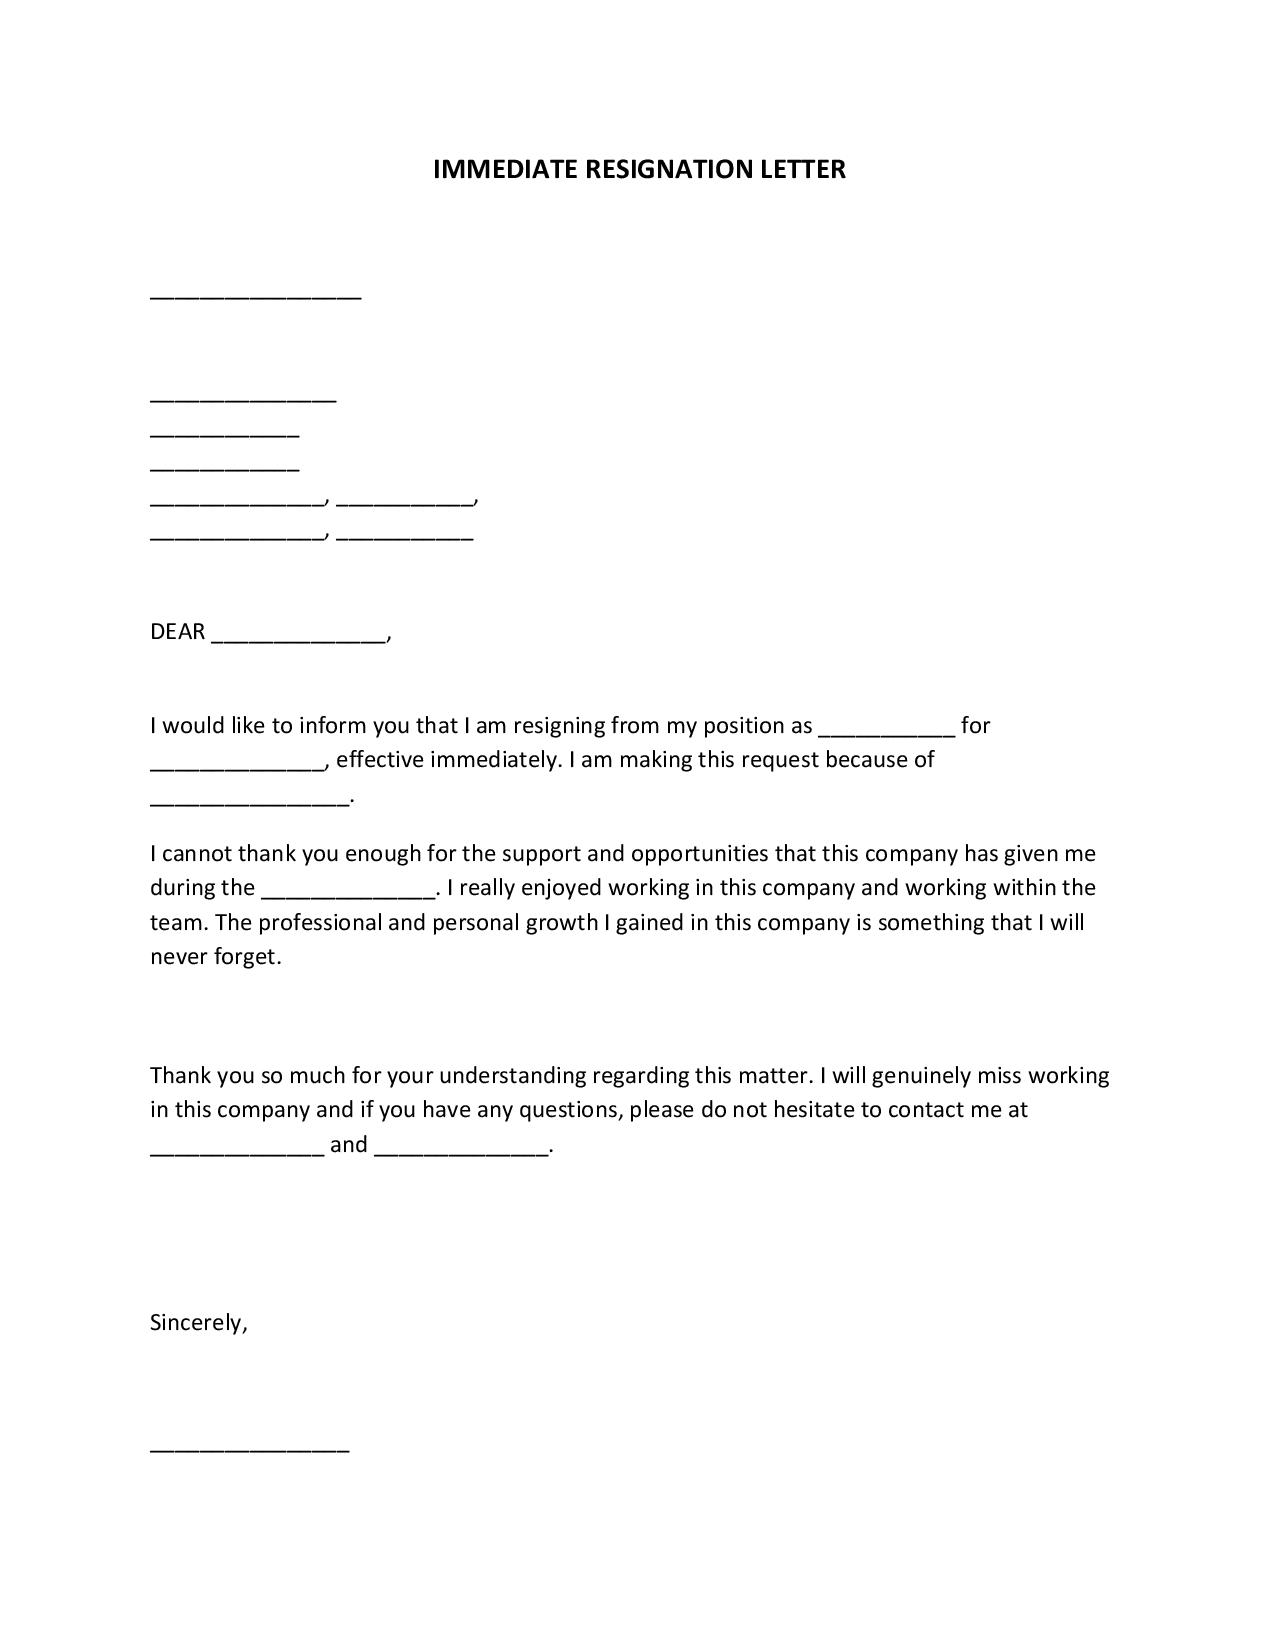 Immediate Resignation Letter For Personal Reasons from images.sampleforms.com